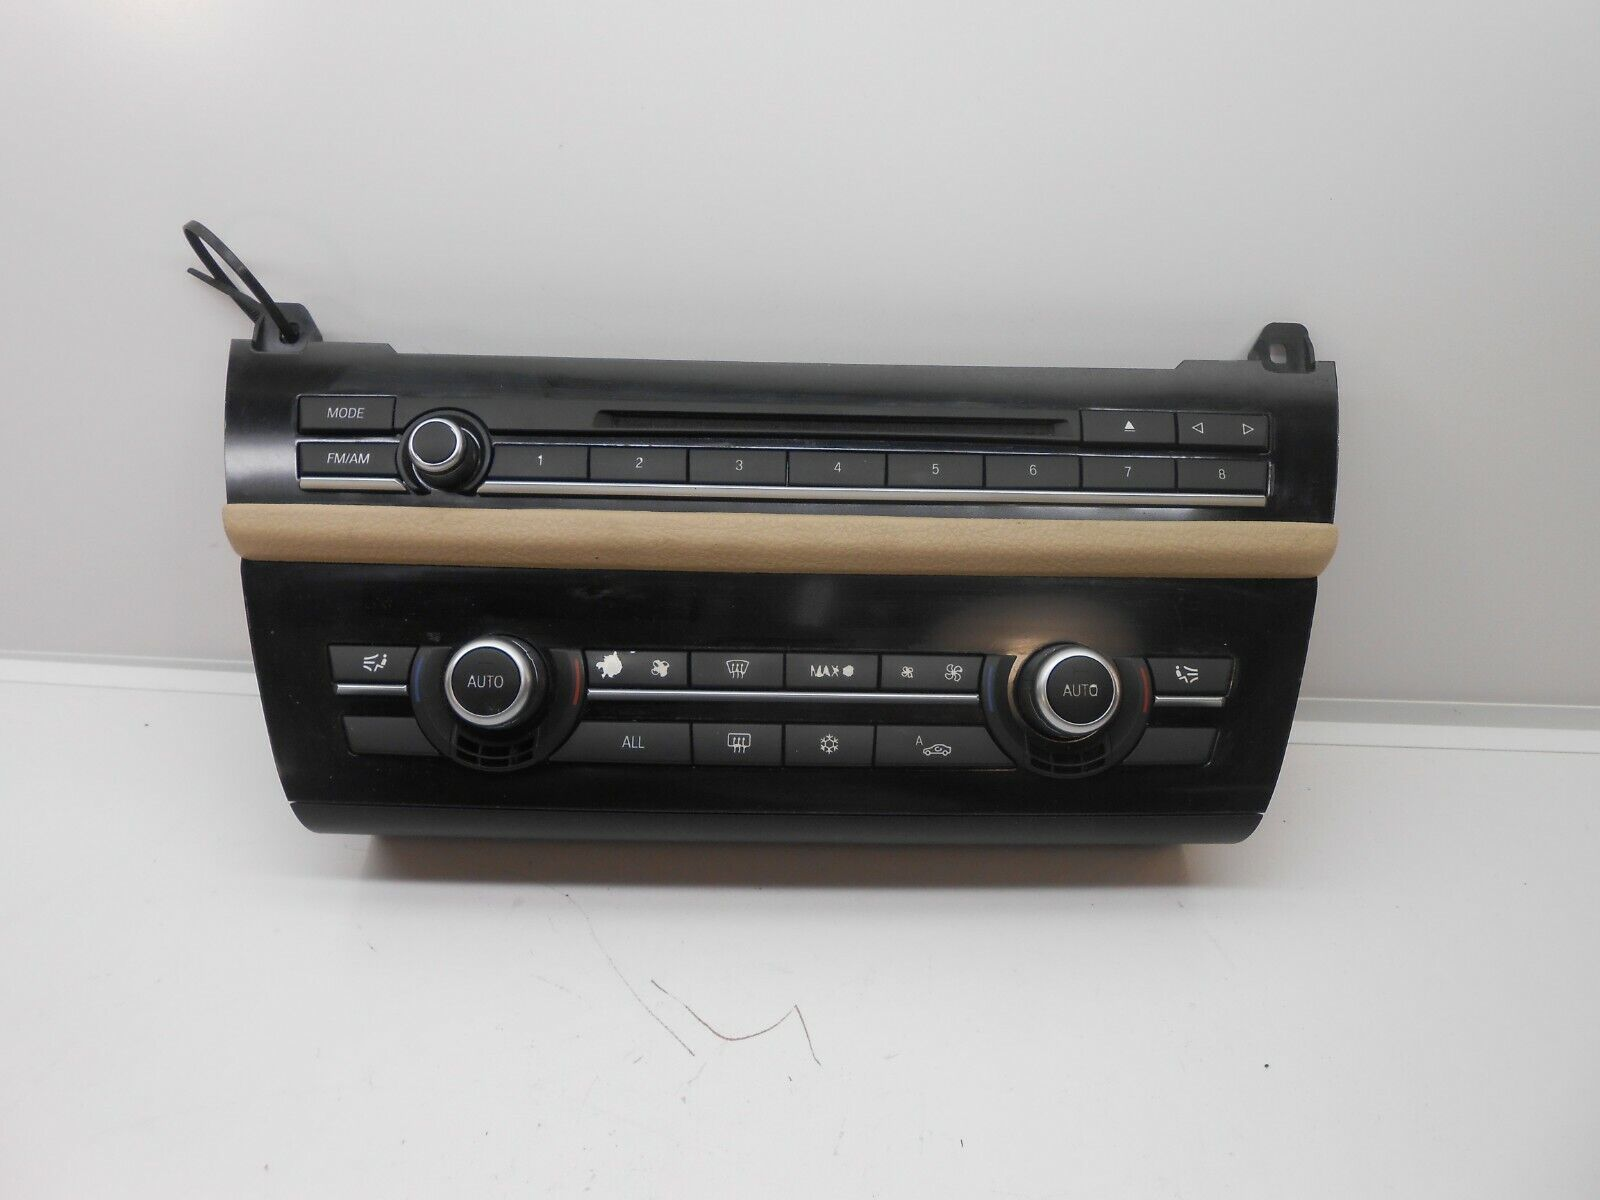 Used 2011 BMW 535i A/C and Heater Controls for Sale